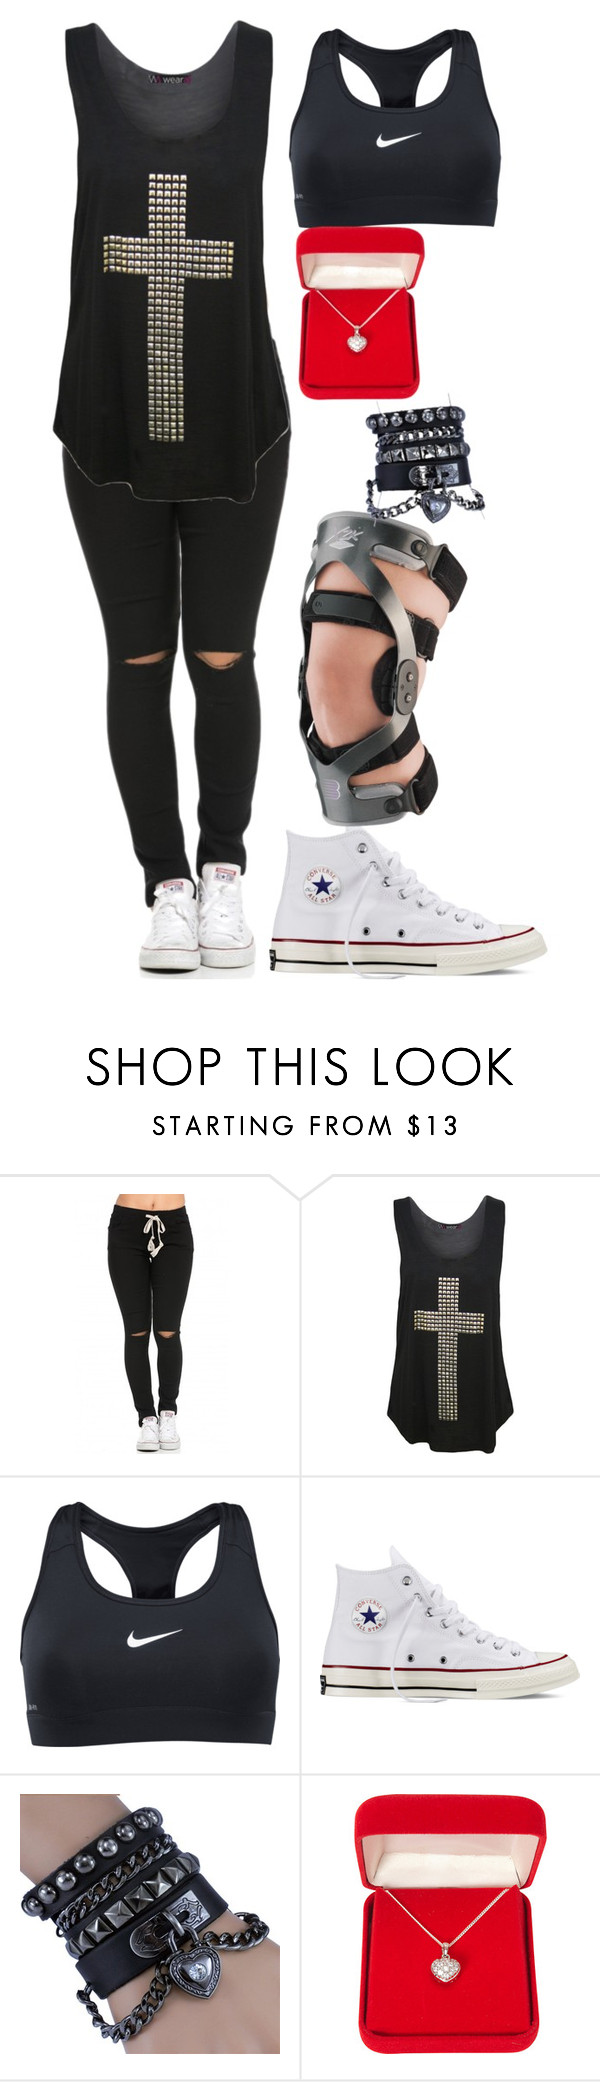 """""""Untitled #297"""" by leeluma ❤ liked on Polyvore featuring WearAll, NIKE, Converse and Alexa Starr"""